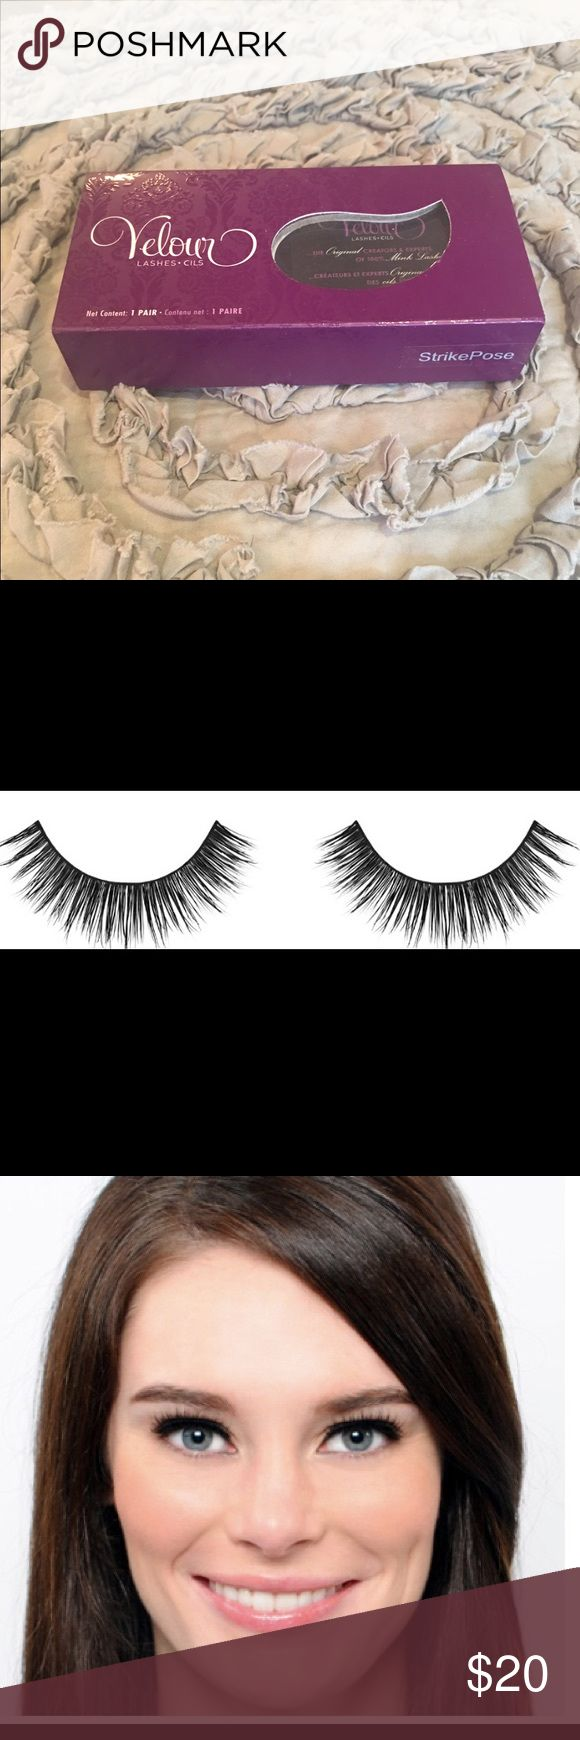 Authentic Velour Mink Lashes in Strike a Pose Are you ready for the spotlight? One of Velour Lash most dramatic pair, evenly distributed across the band designed with an abundance of fur. With its extreme length and thickness, you will be the center of attention.  Velour lashes are cruelty free and can be worn up to 25 times when cared for properly and their shape will never change. I thought I could wear false lashes - I was wrong ❤️. These are brand new in box never touched. Velour Lashes…